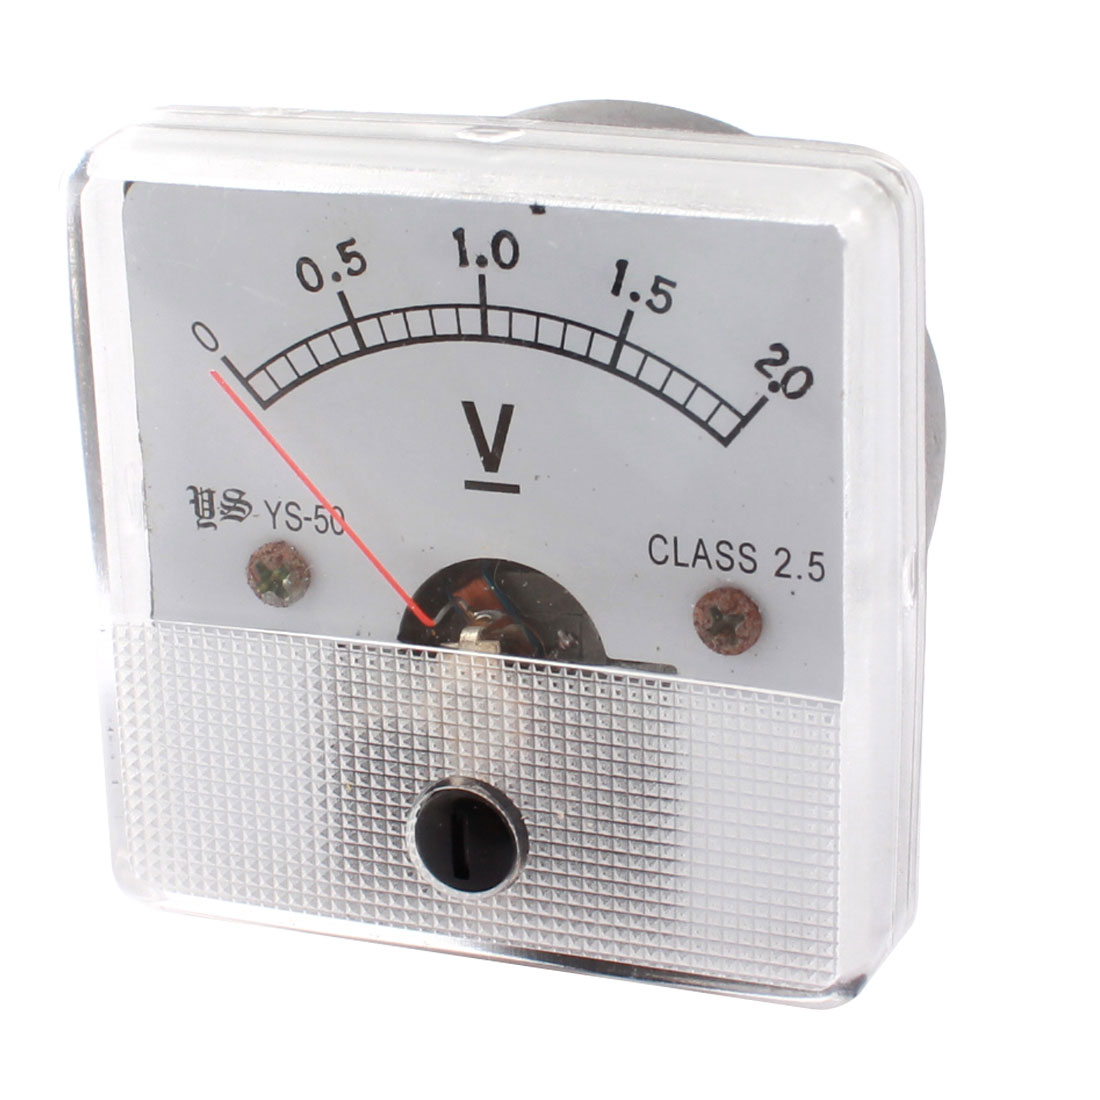 DC 0-2.0V Class 2.5 Accuracy Square Plastic Fine Tuning Dial Panel Analog Voltmeter for Testing Work